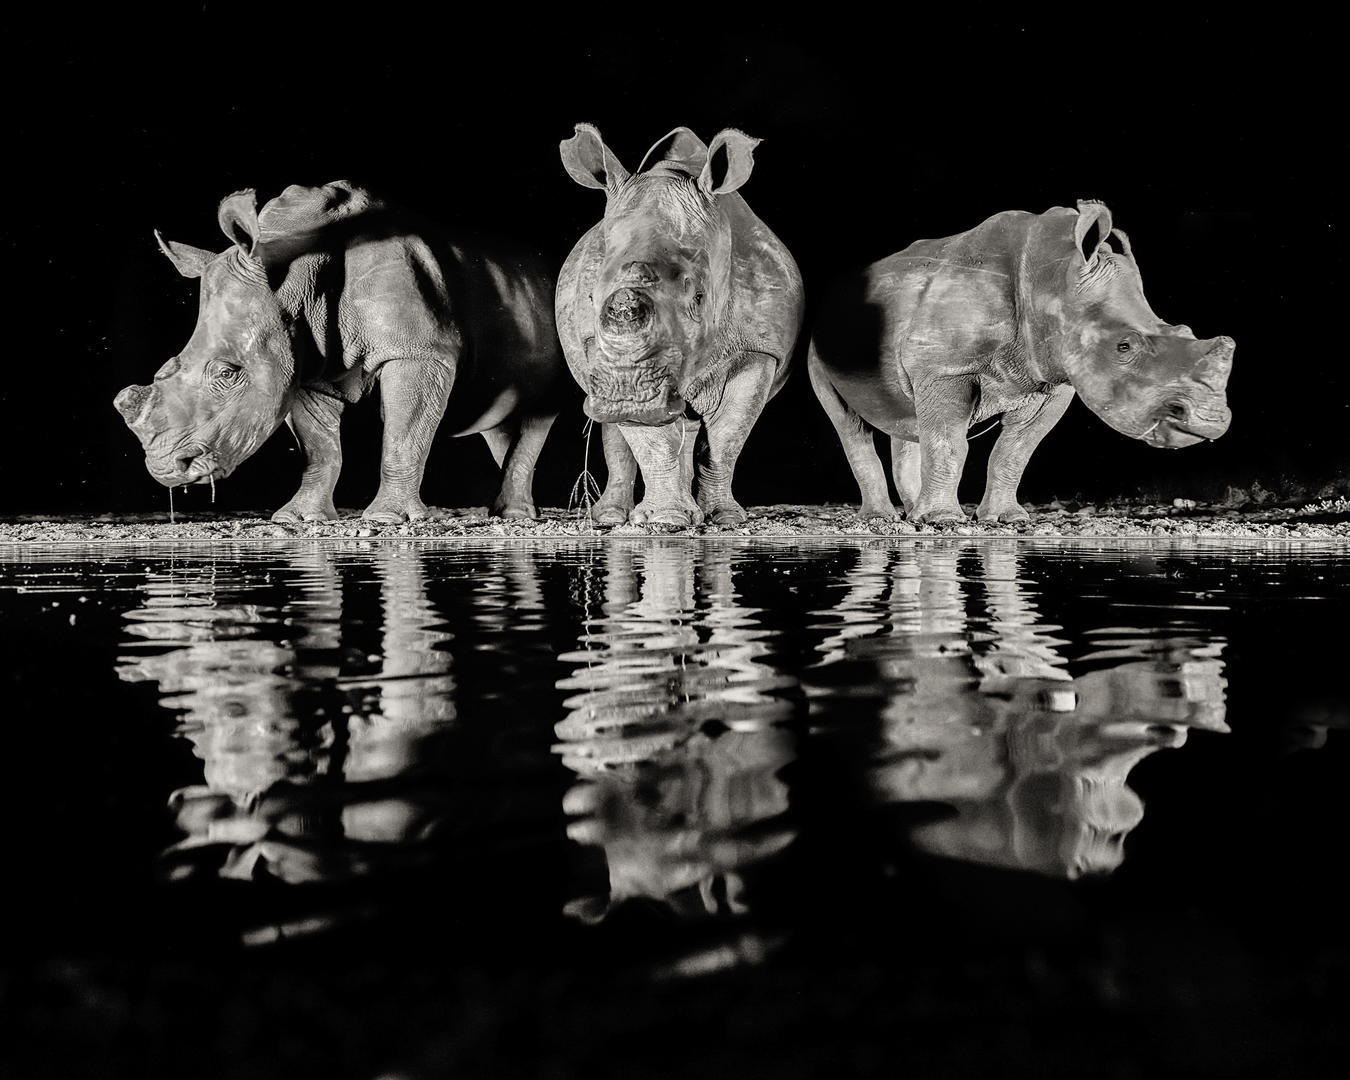 Three White Rhinos #2, © Alan Smith, 2nd place, Digital Camera Photographer of the Year